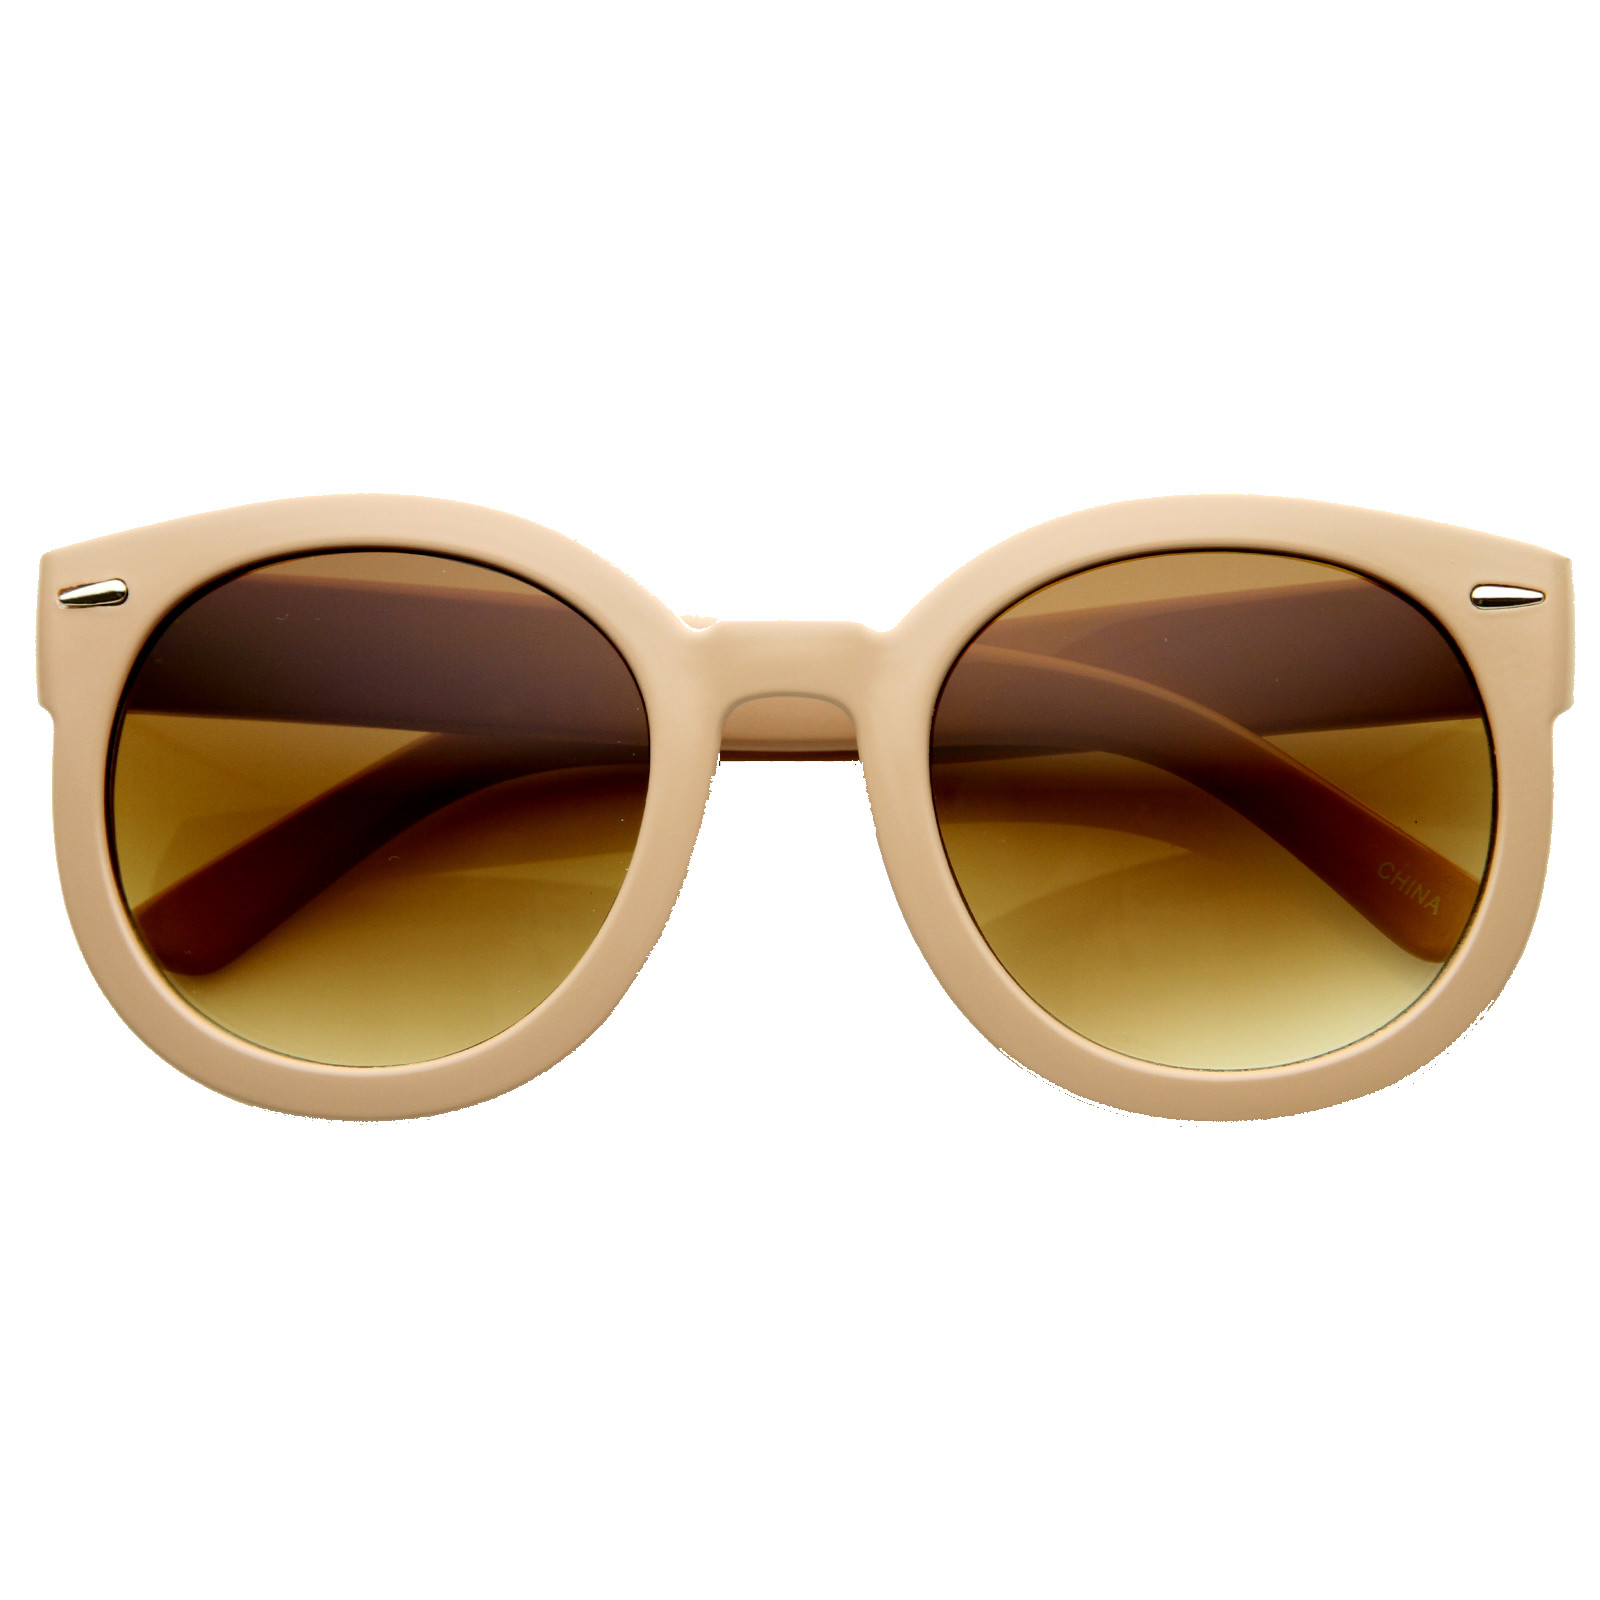 The extremely popular style was introduced in , and since has remained one of the go-to vintage sunglasses for women. Today, the has been updated and is available in many colours and patterns, though the retro feel remains the same.